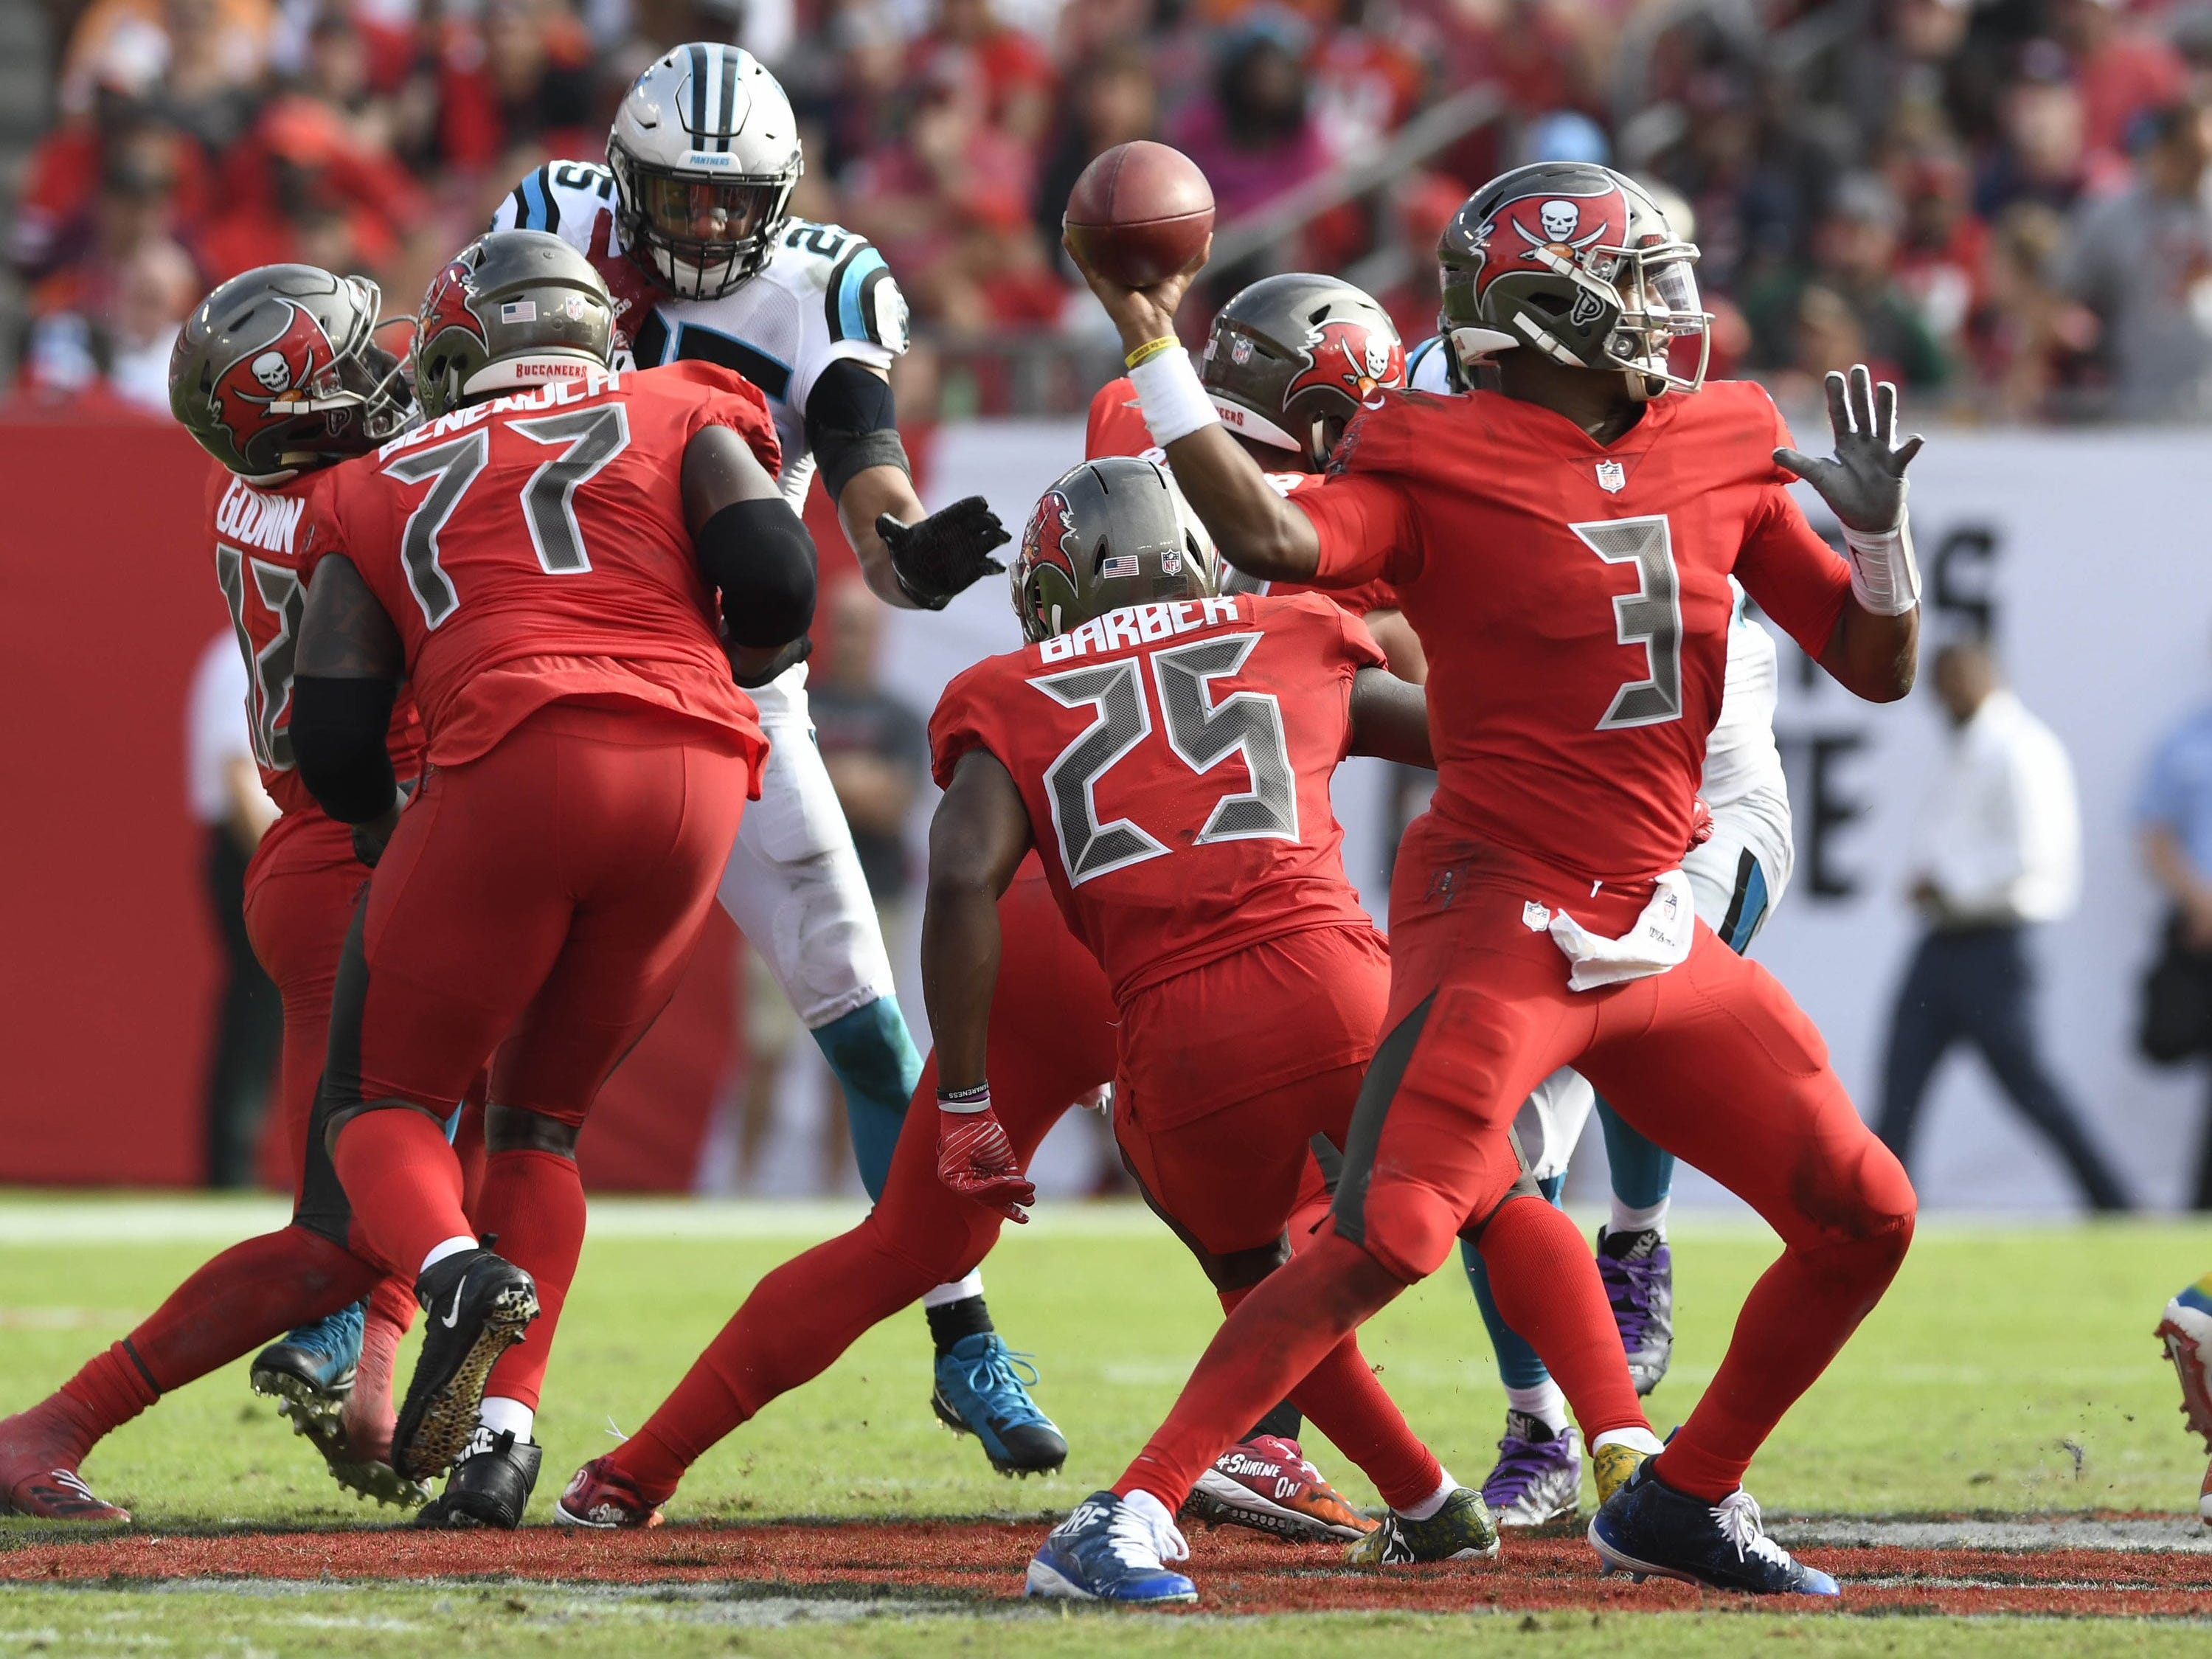 23. Buccaneers (5-7) | Last game: Defeated the Panthers, 24-17 | Previous ranking: 26 | The buzz: If Bucs fall for Jameis Winston's rope-a-dope down the stretch, they get what they deserve.